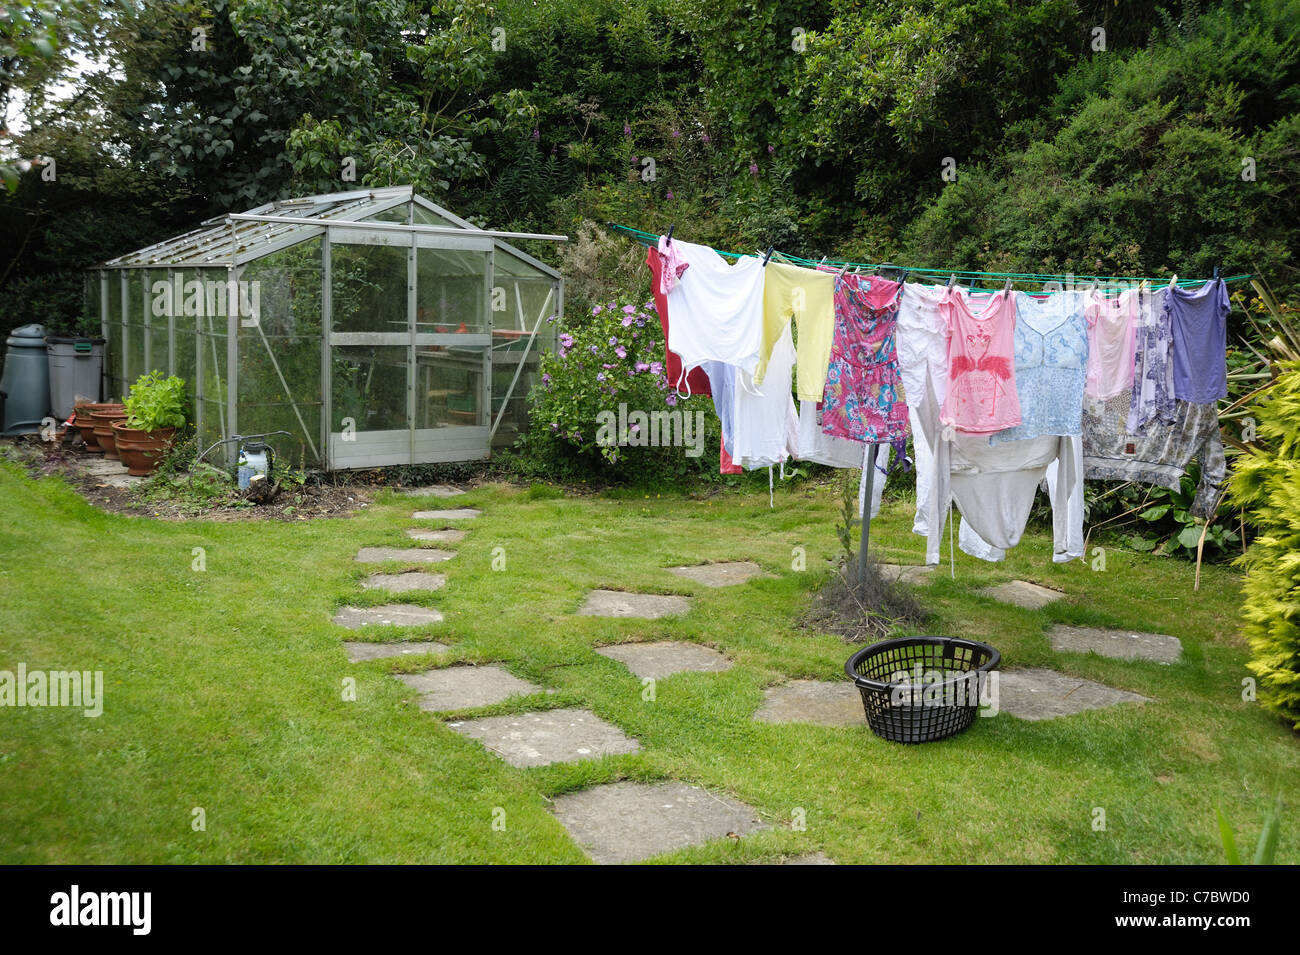 Garden greenhouse, small lawn paving and washing line with washing - Stock Image